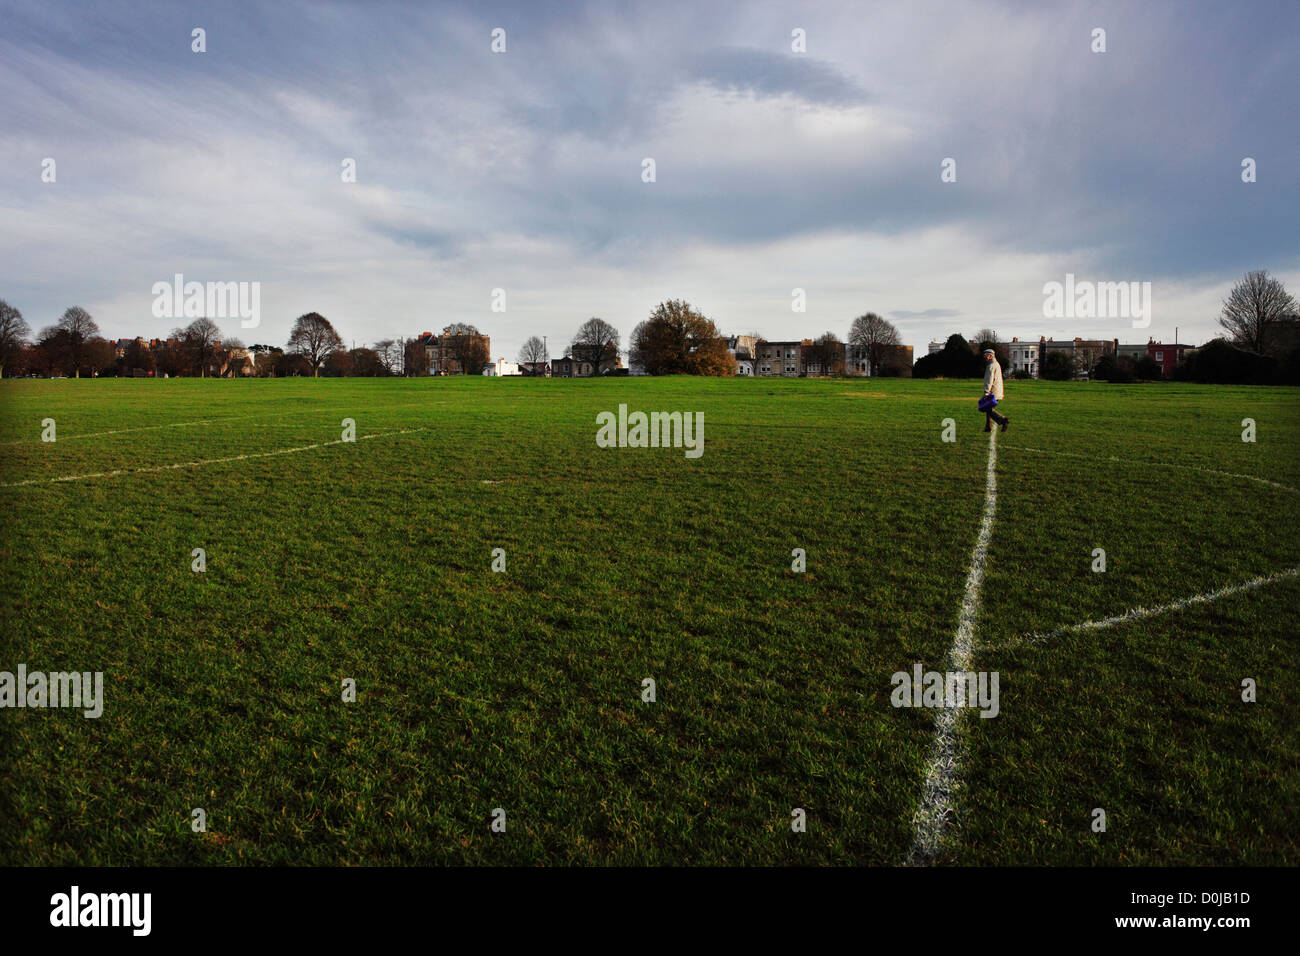 A lone man walks across a football pitch in The Downs area of Bristol. - Stock Image